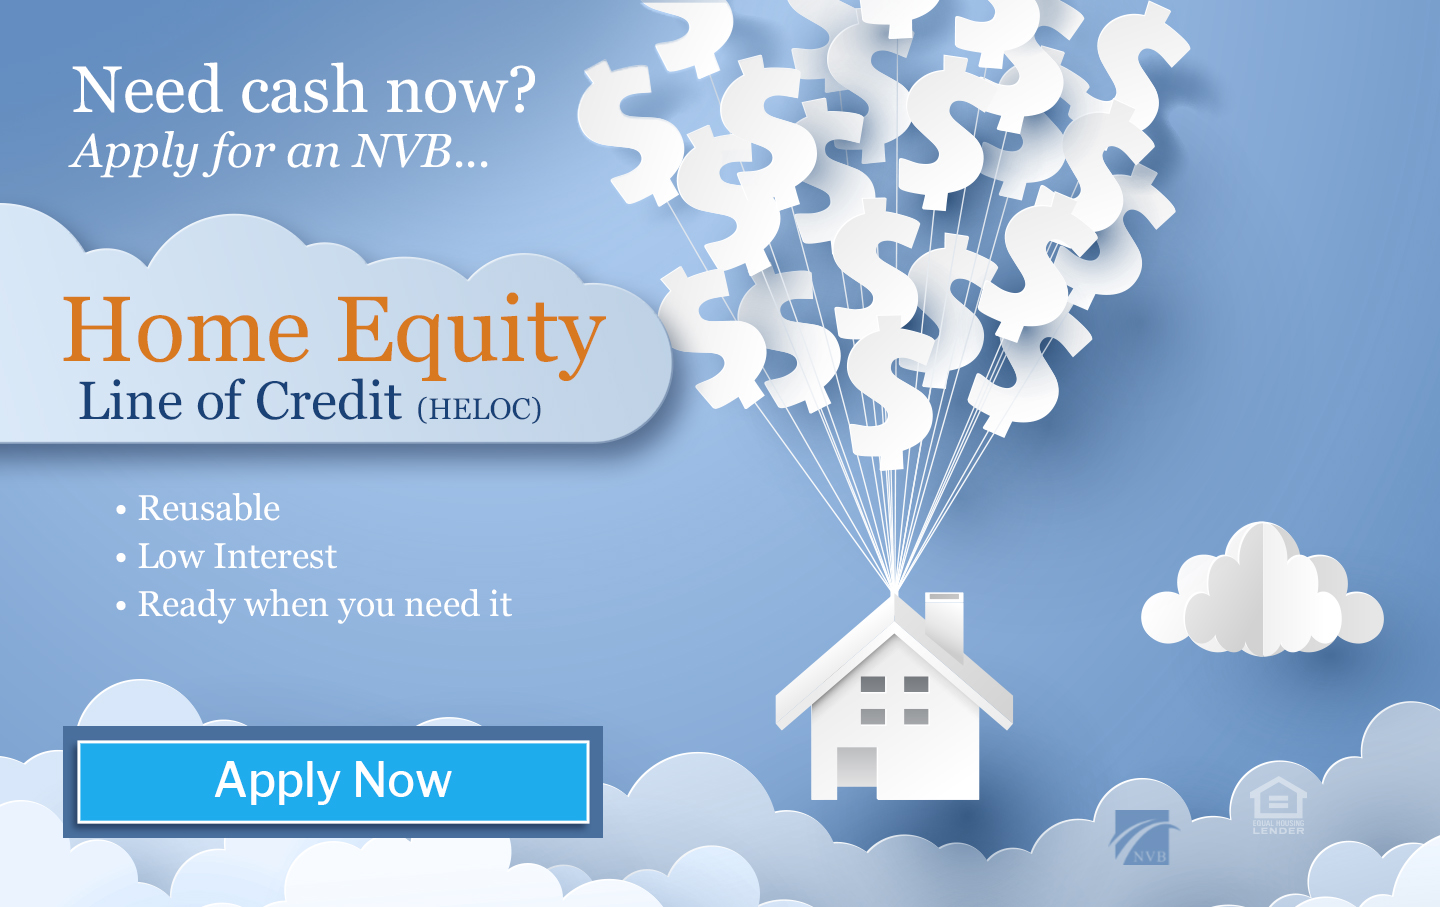 Paper house floating through clouds by dollar sign balloons with text promoting Home Equity Line of Credit